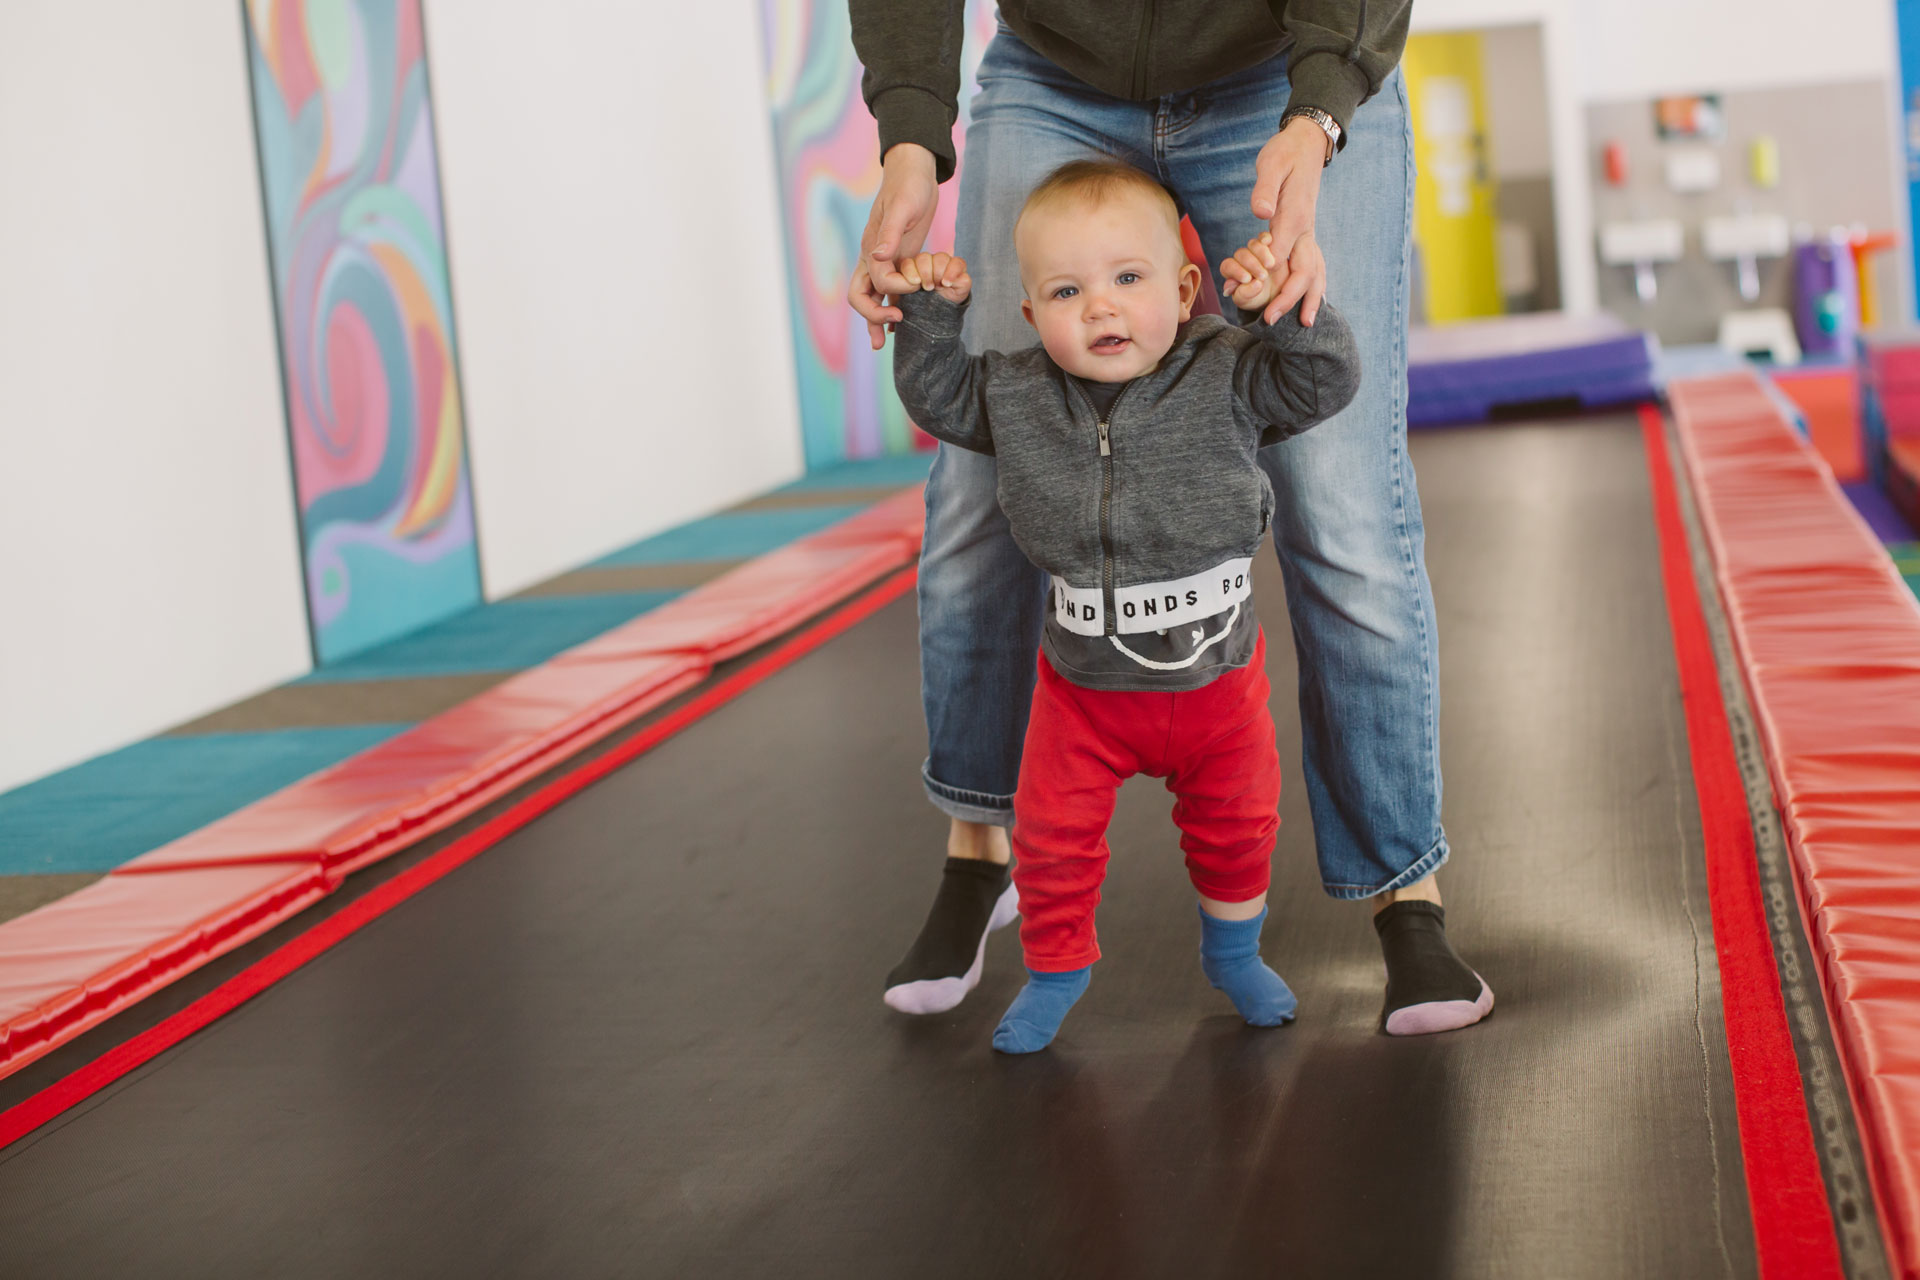 Baby gym, it's all about development!